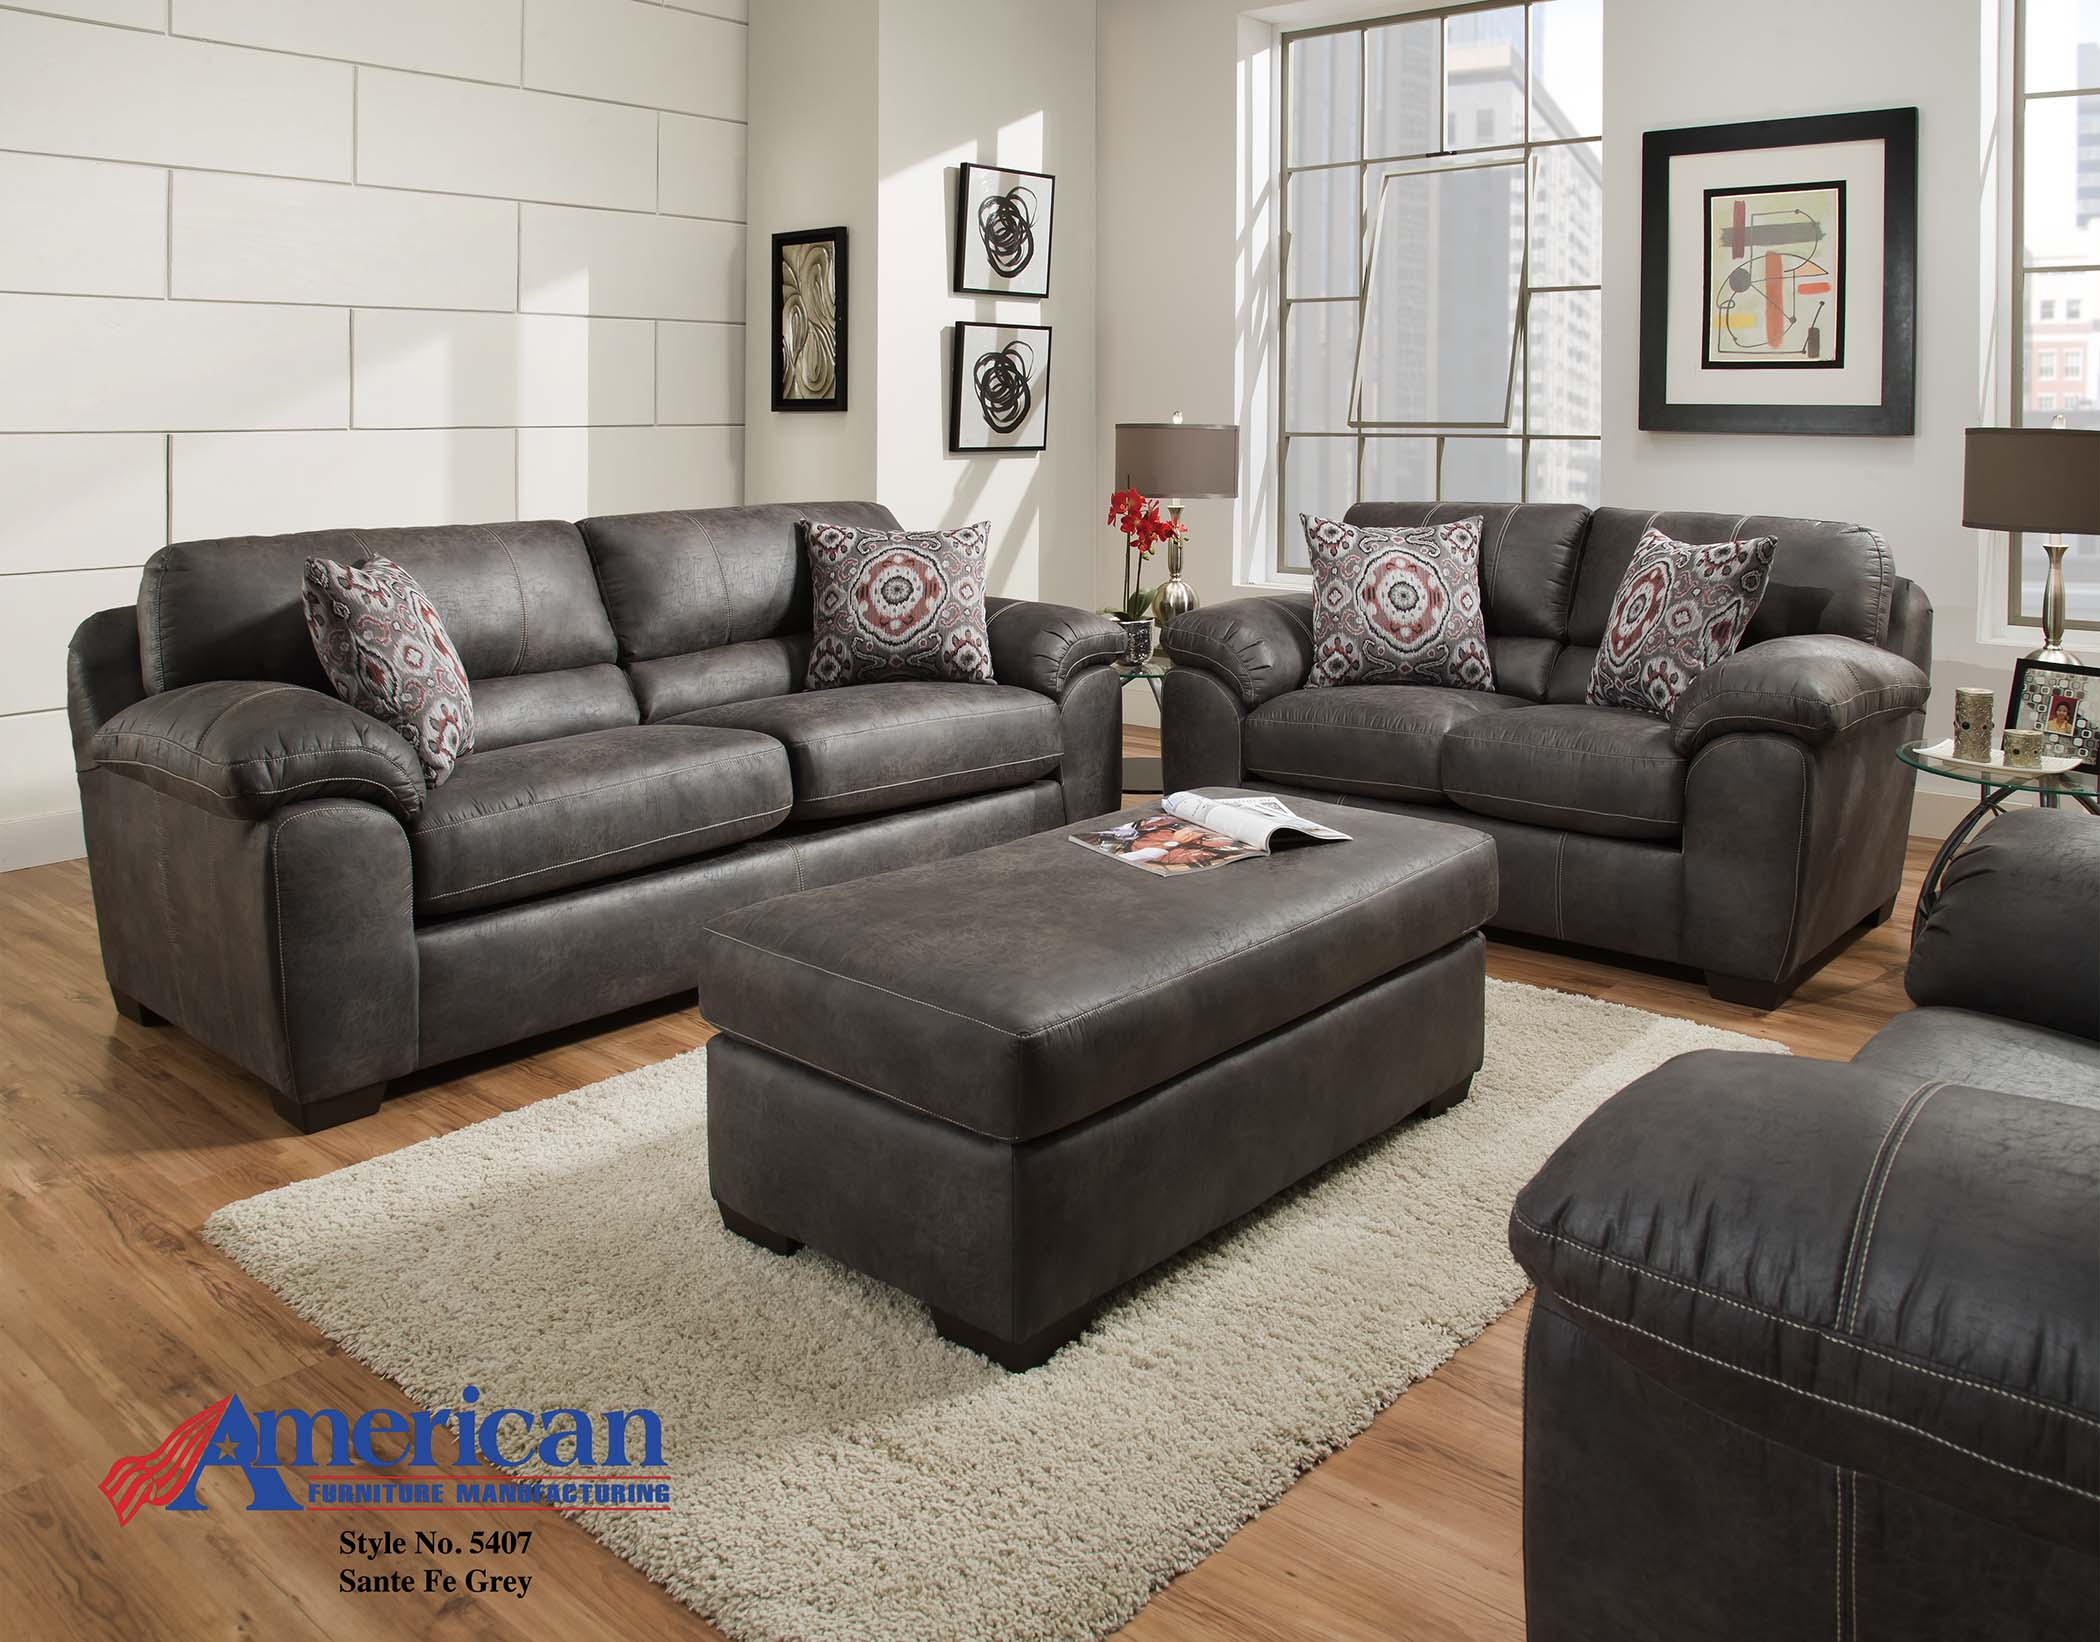 5407 Santa Fe Silt Sofa American Furniture Manufacturing